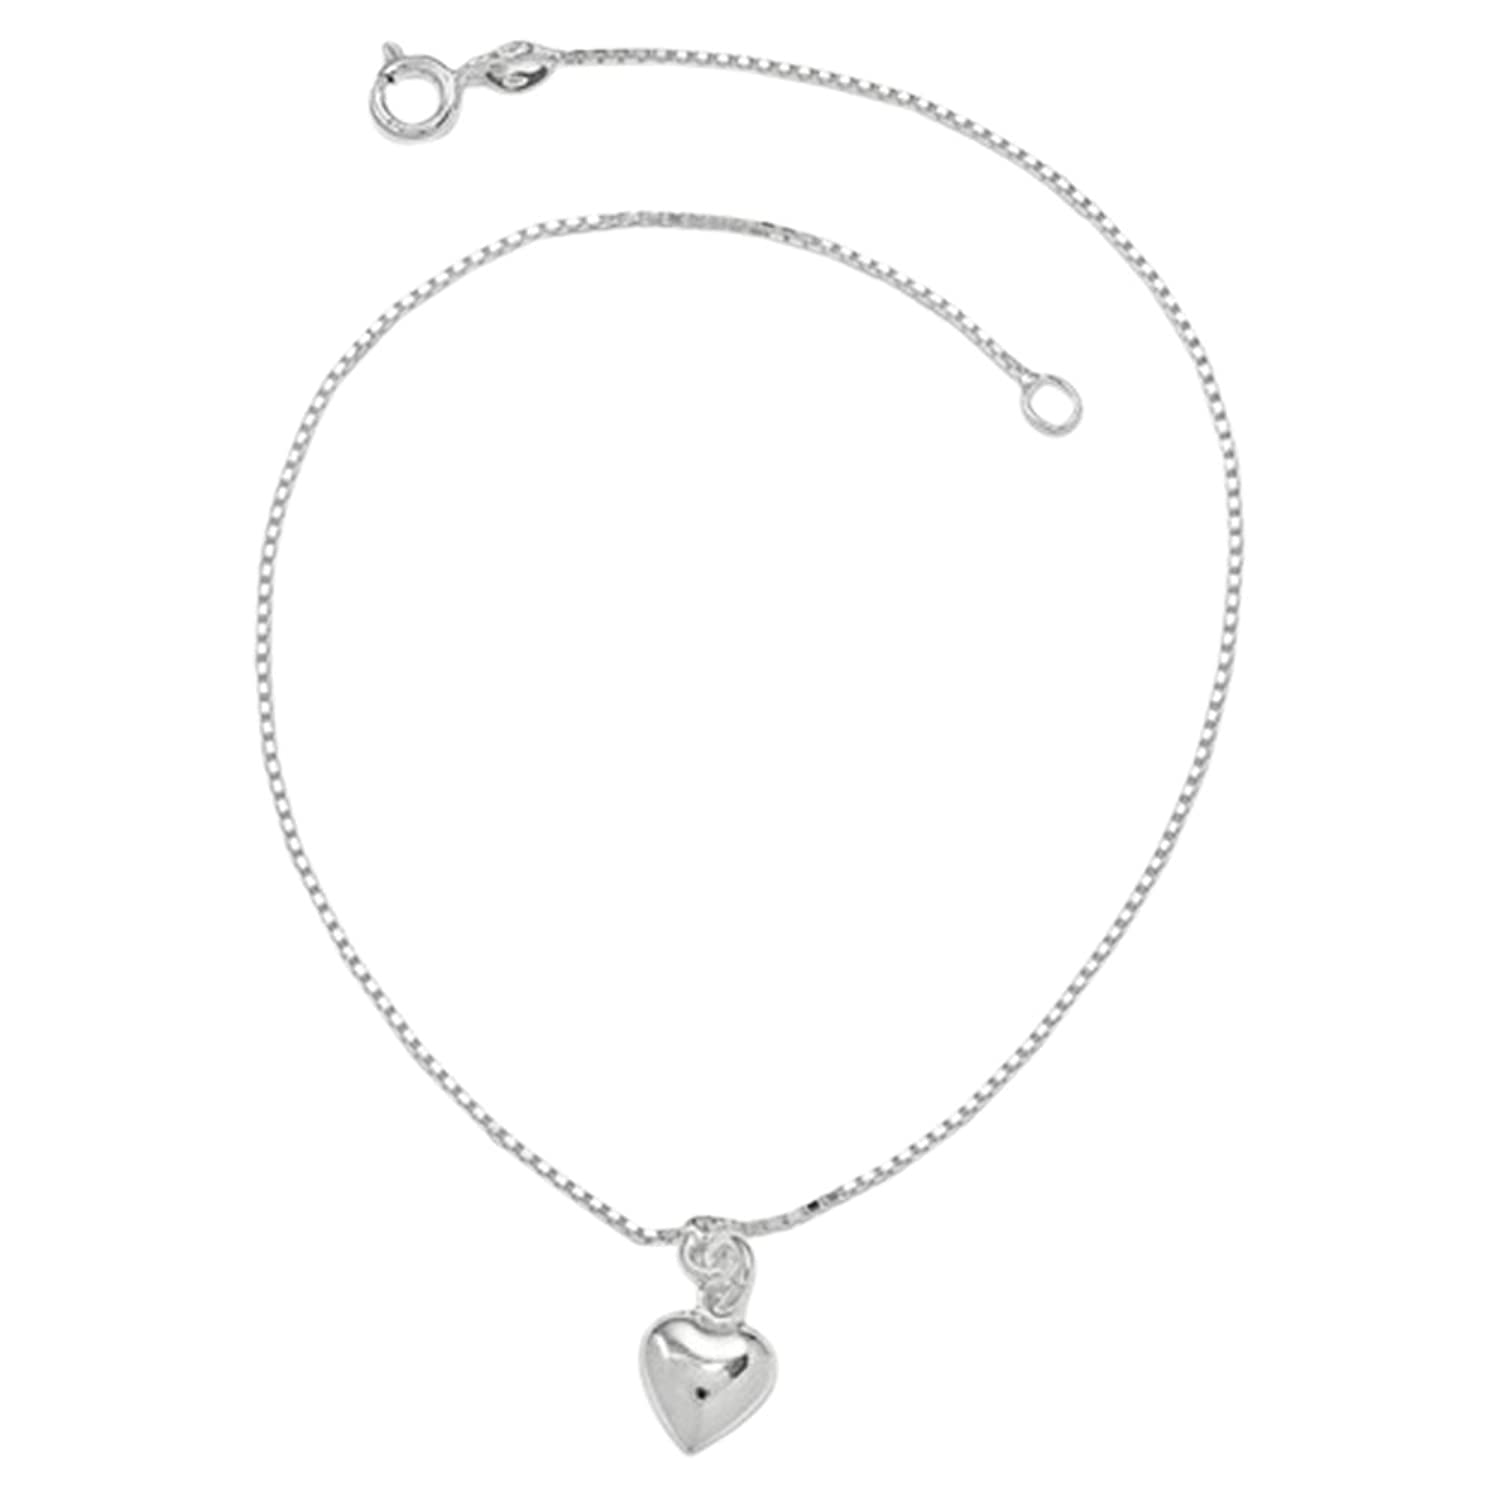 .925 Sterling Silver 1.00MM 3-Dimensional Puffed Heart Anklet Bracelet, 10 Inches